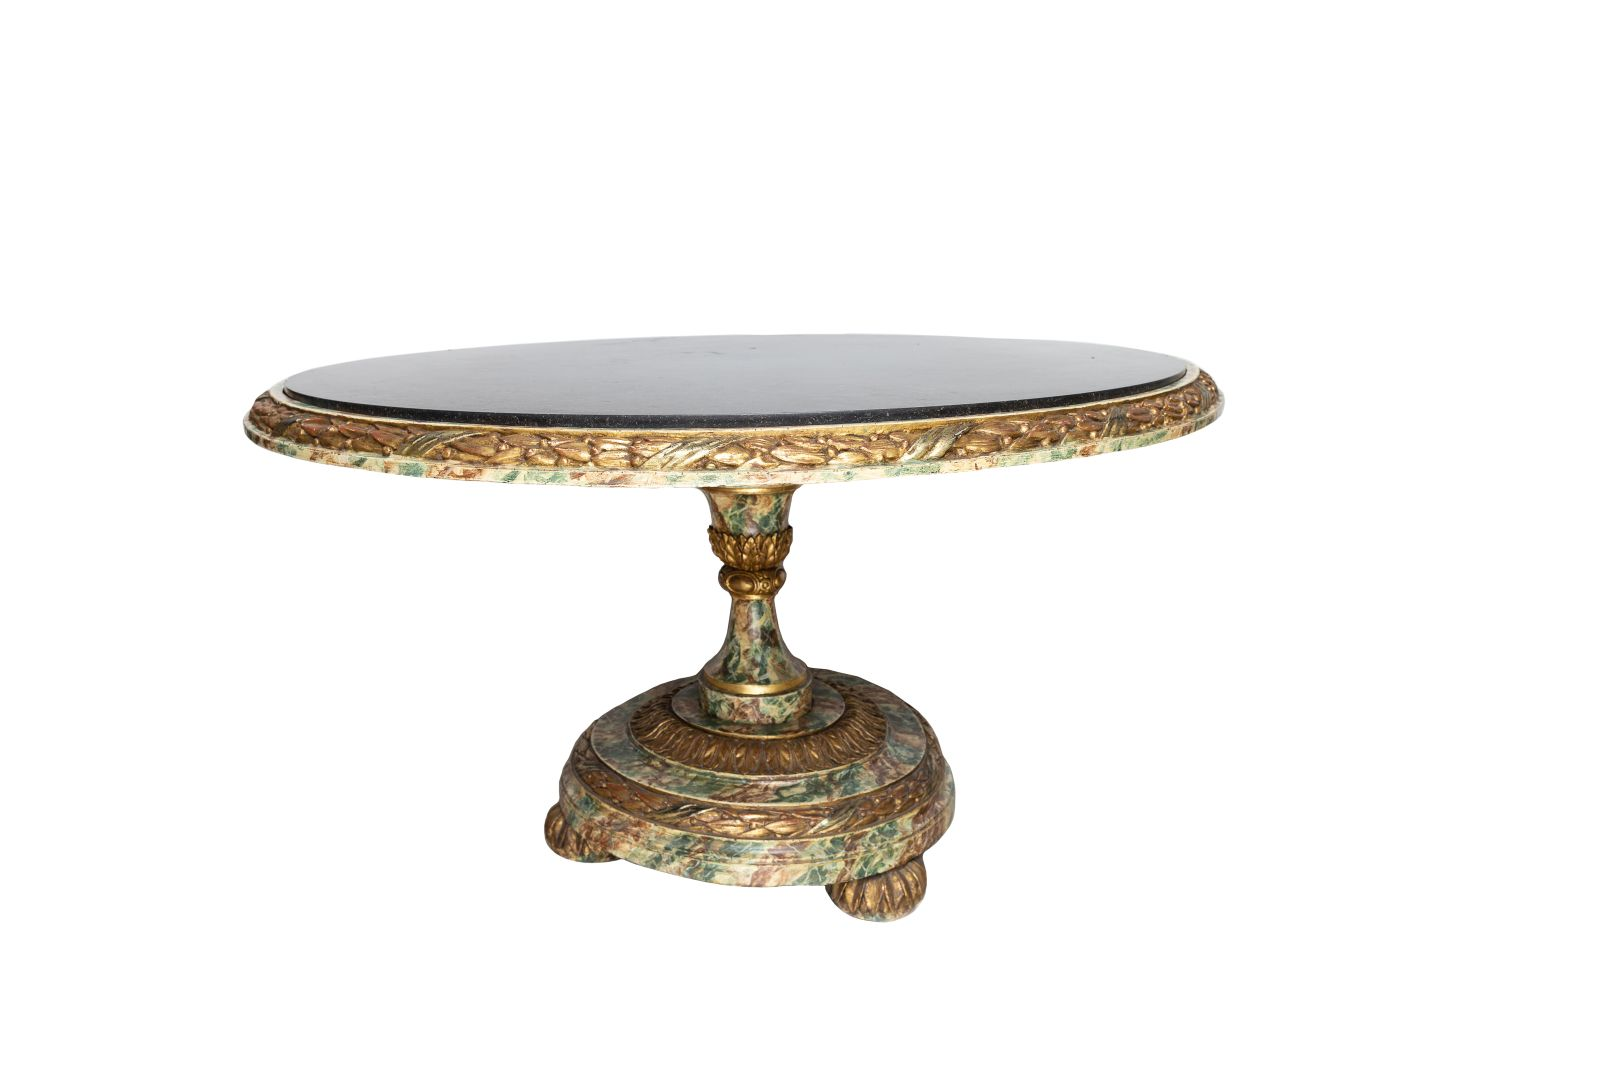 #35 Round table, painted in marble look, Sicily, late 18th century   Runder Tisch, staffiert in Marmoroptik, Sizilien, spätes 18. Jh. Image